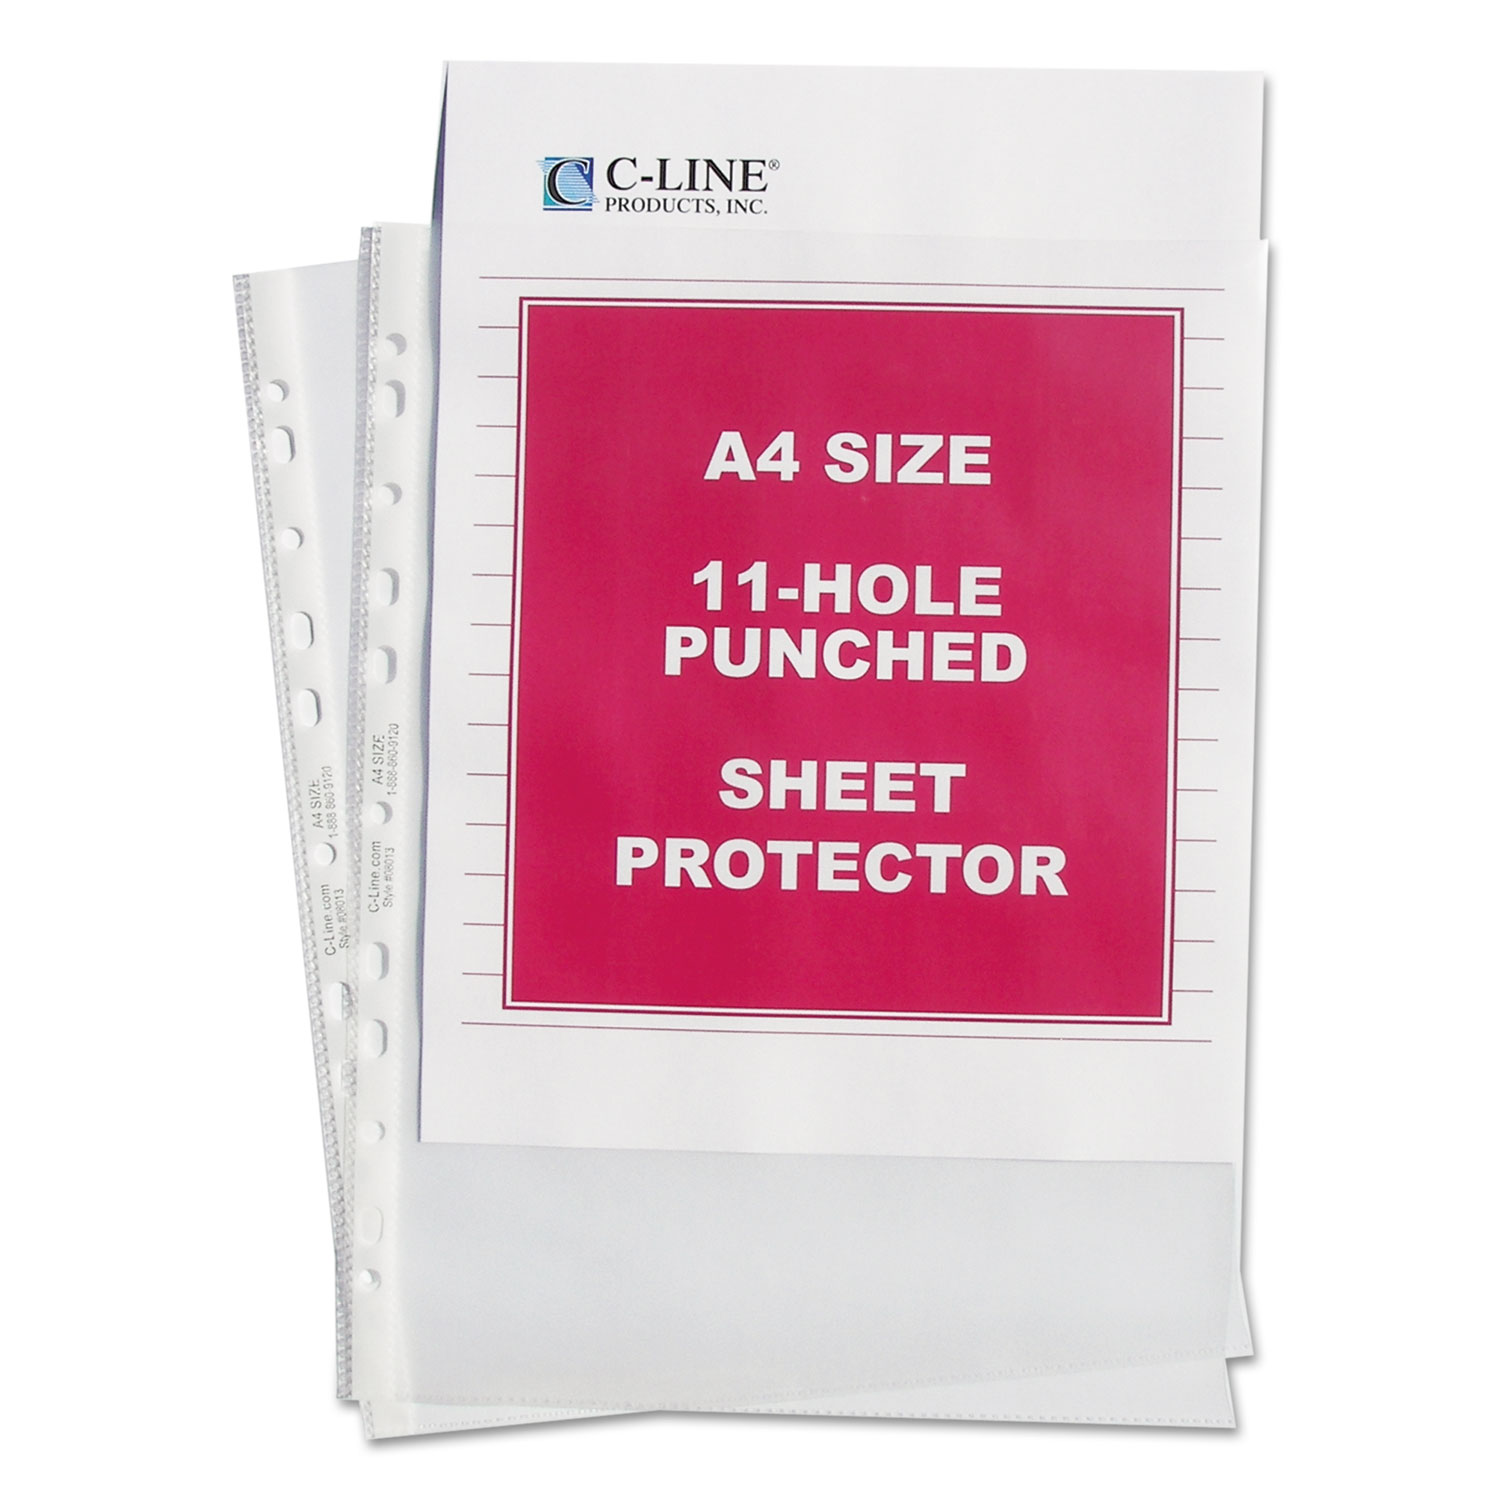 "Standard Weight Poly Sheet Protectors, Clear, 2"", 11 3/4 x 8 1/4, 50/BX"